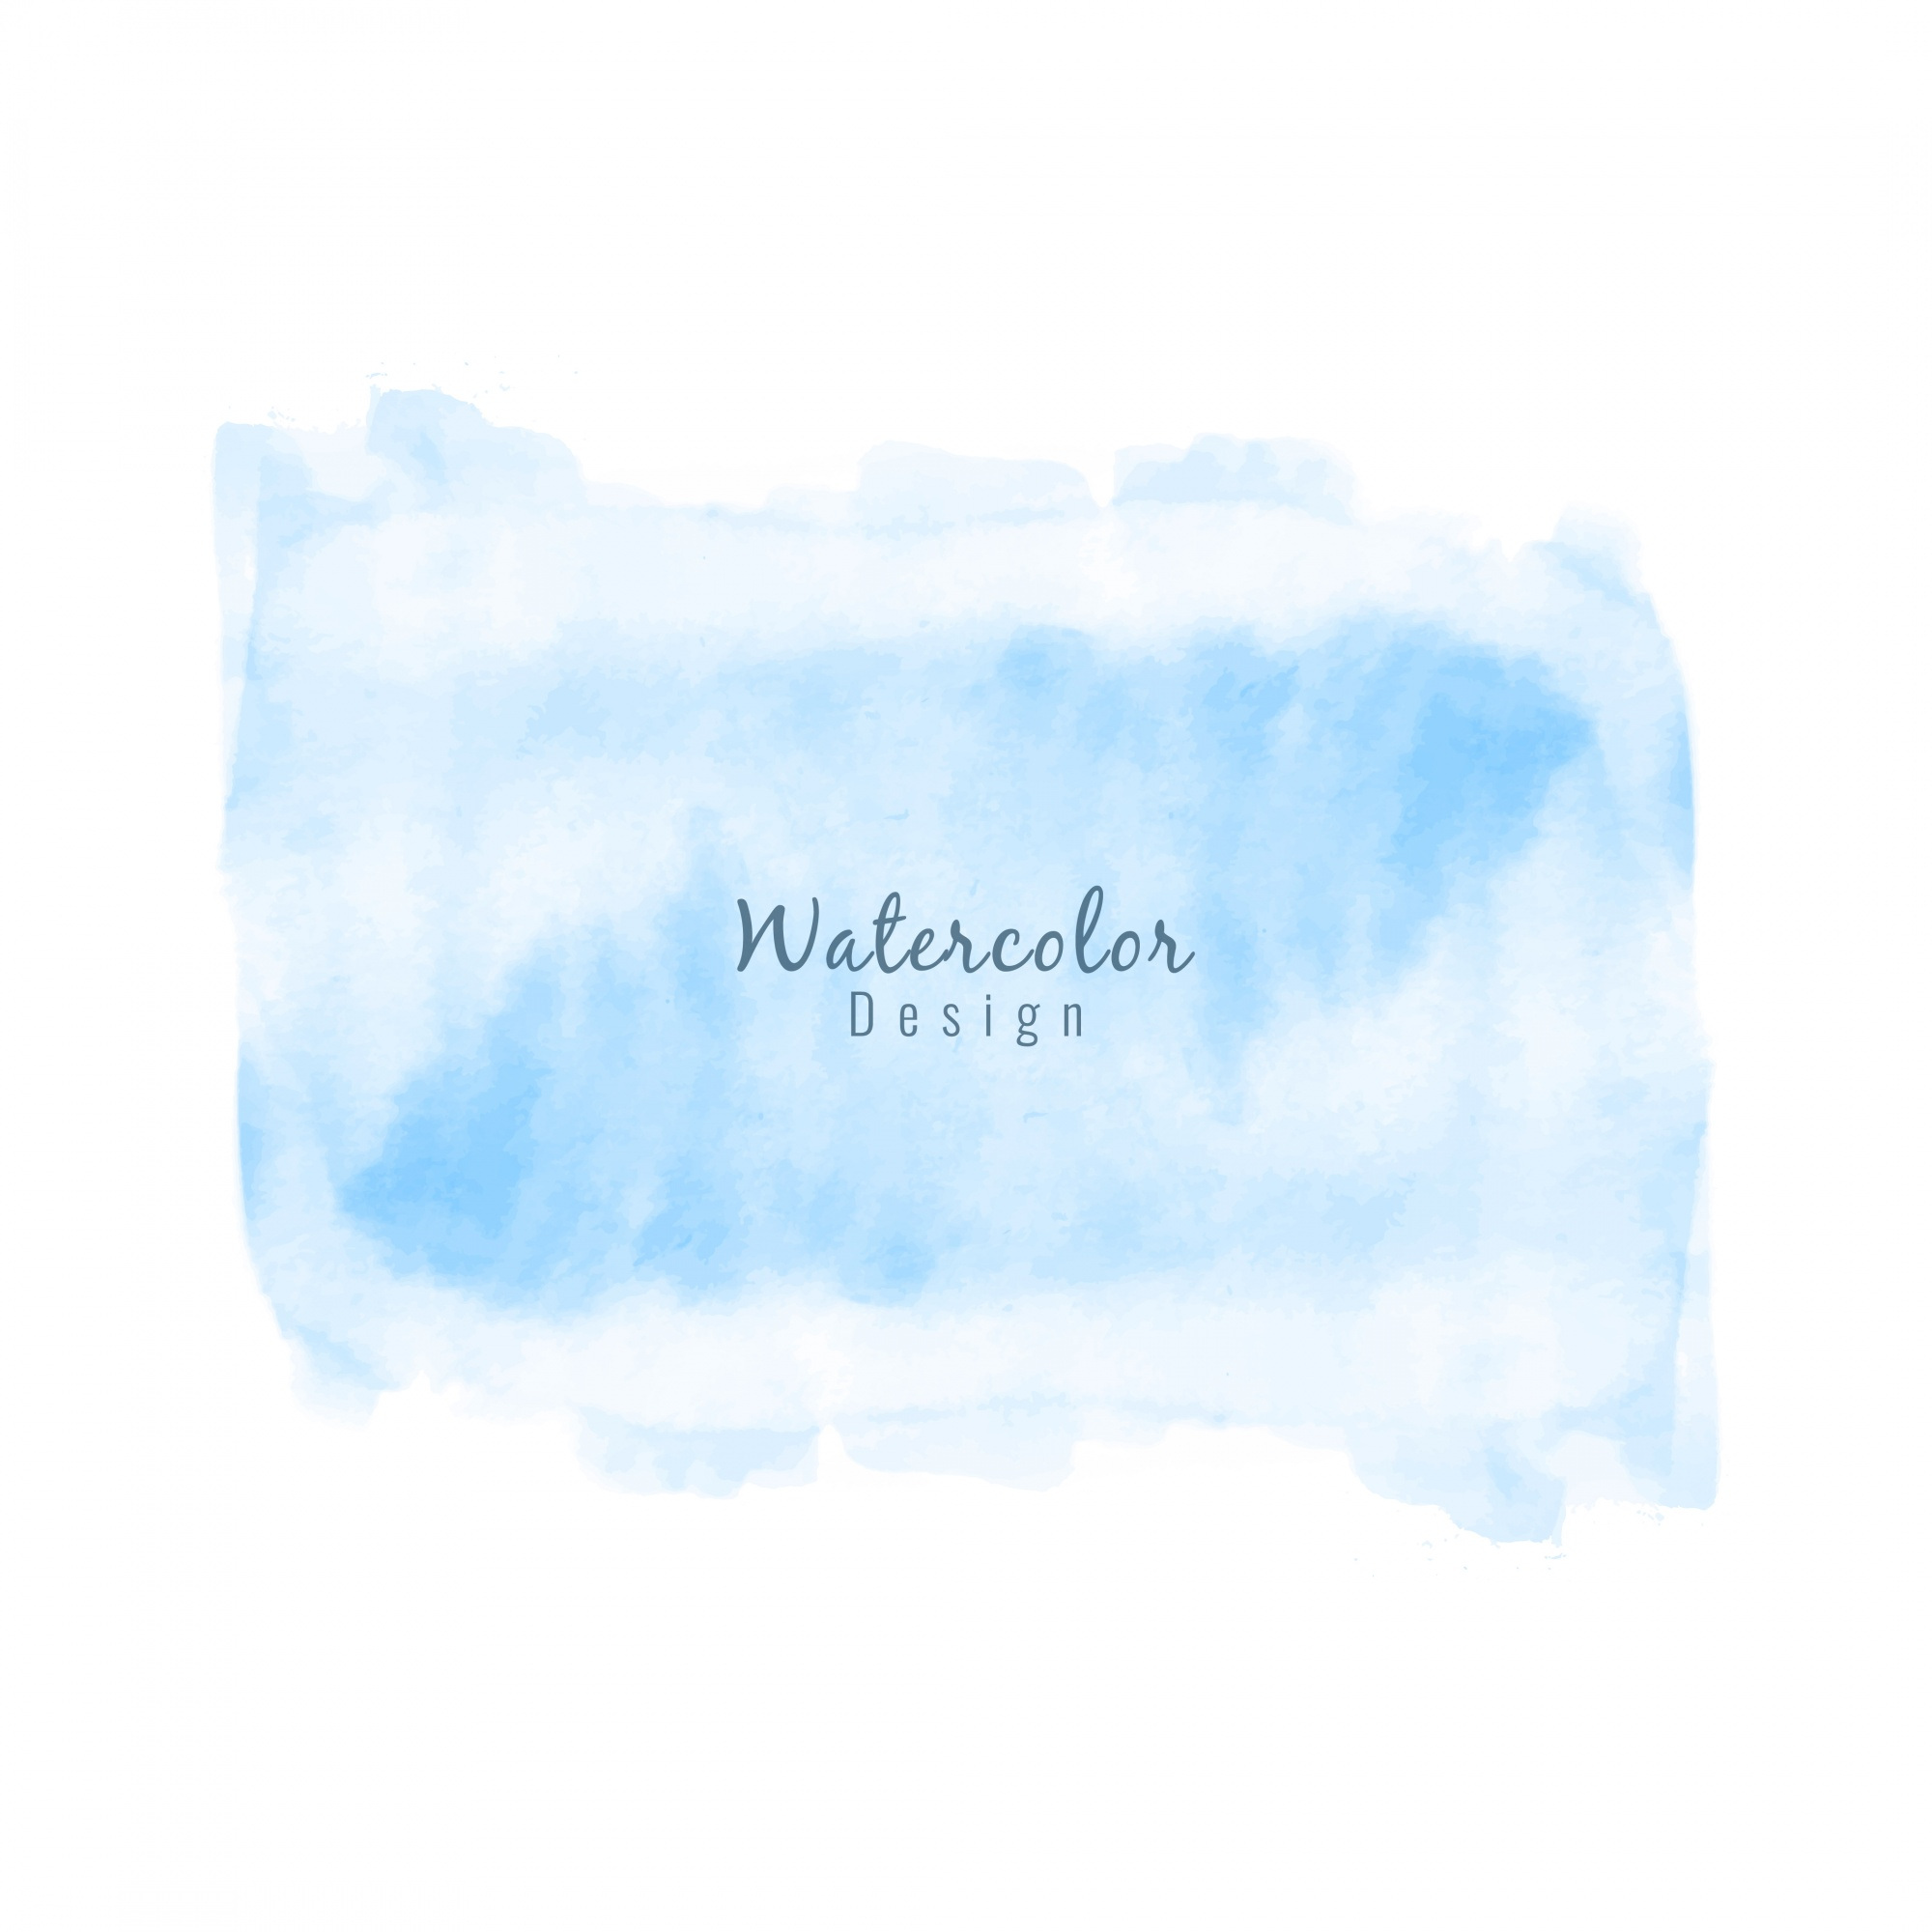 Abstract blue watercolor stain design background